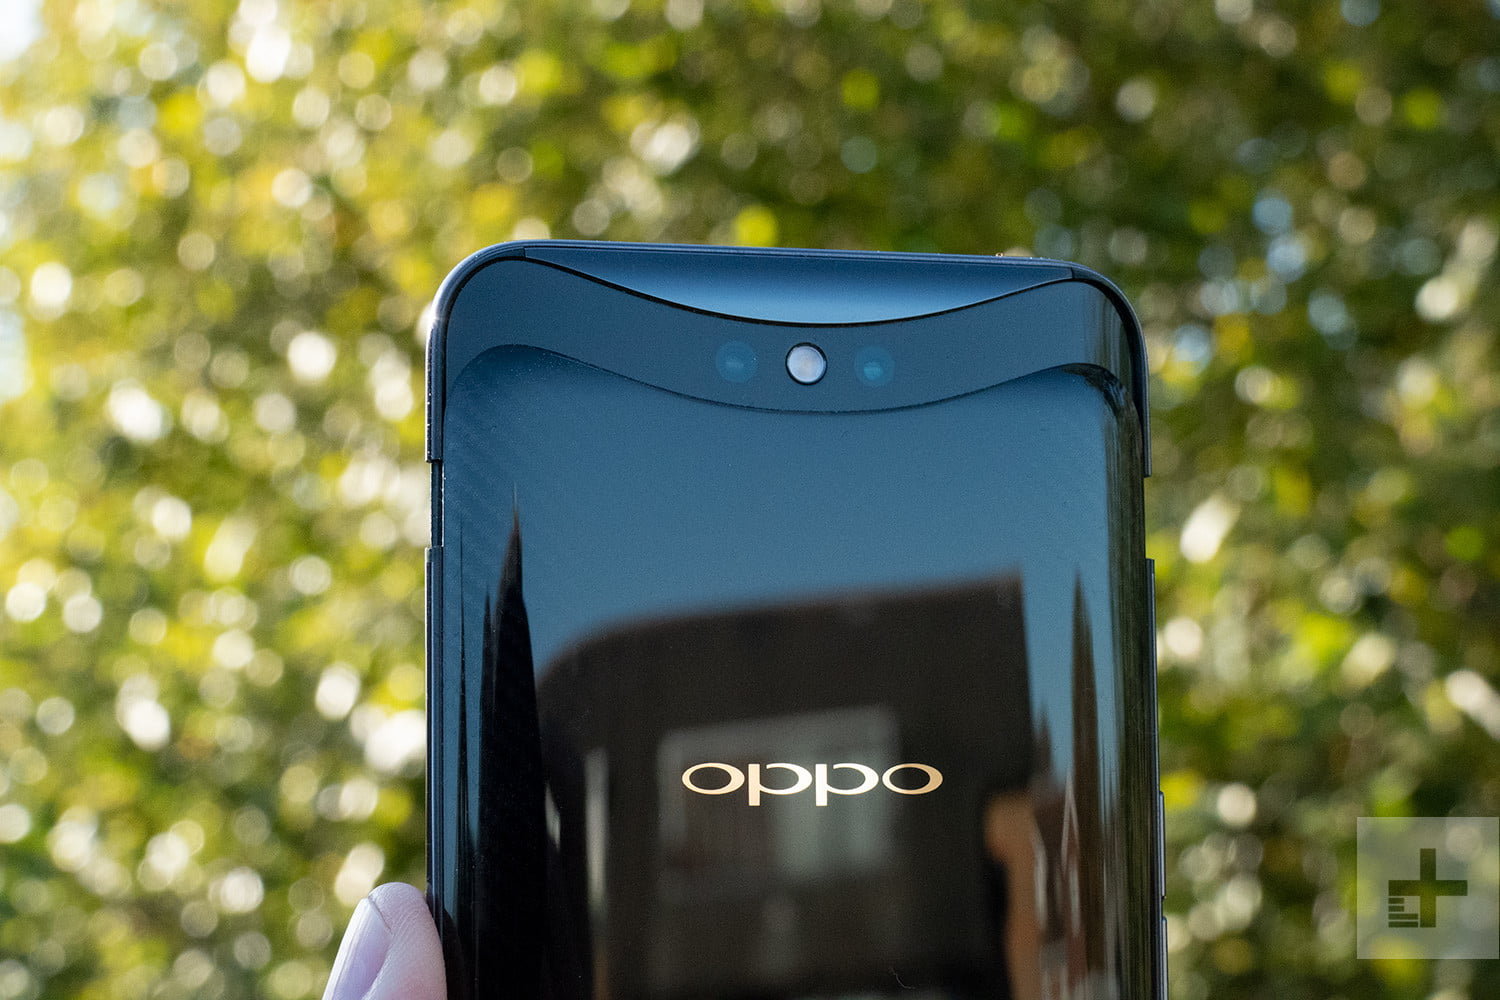 Oppo Folding Smartphone to Be Revealed at MWC 2019 | Digital